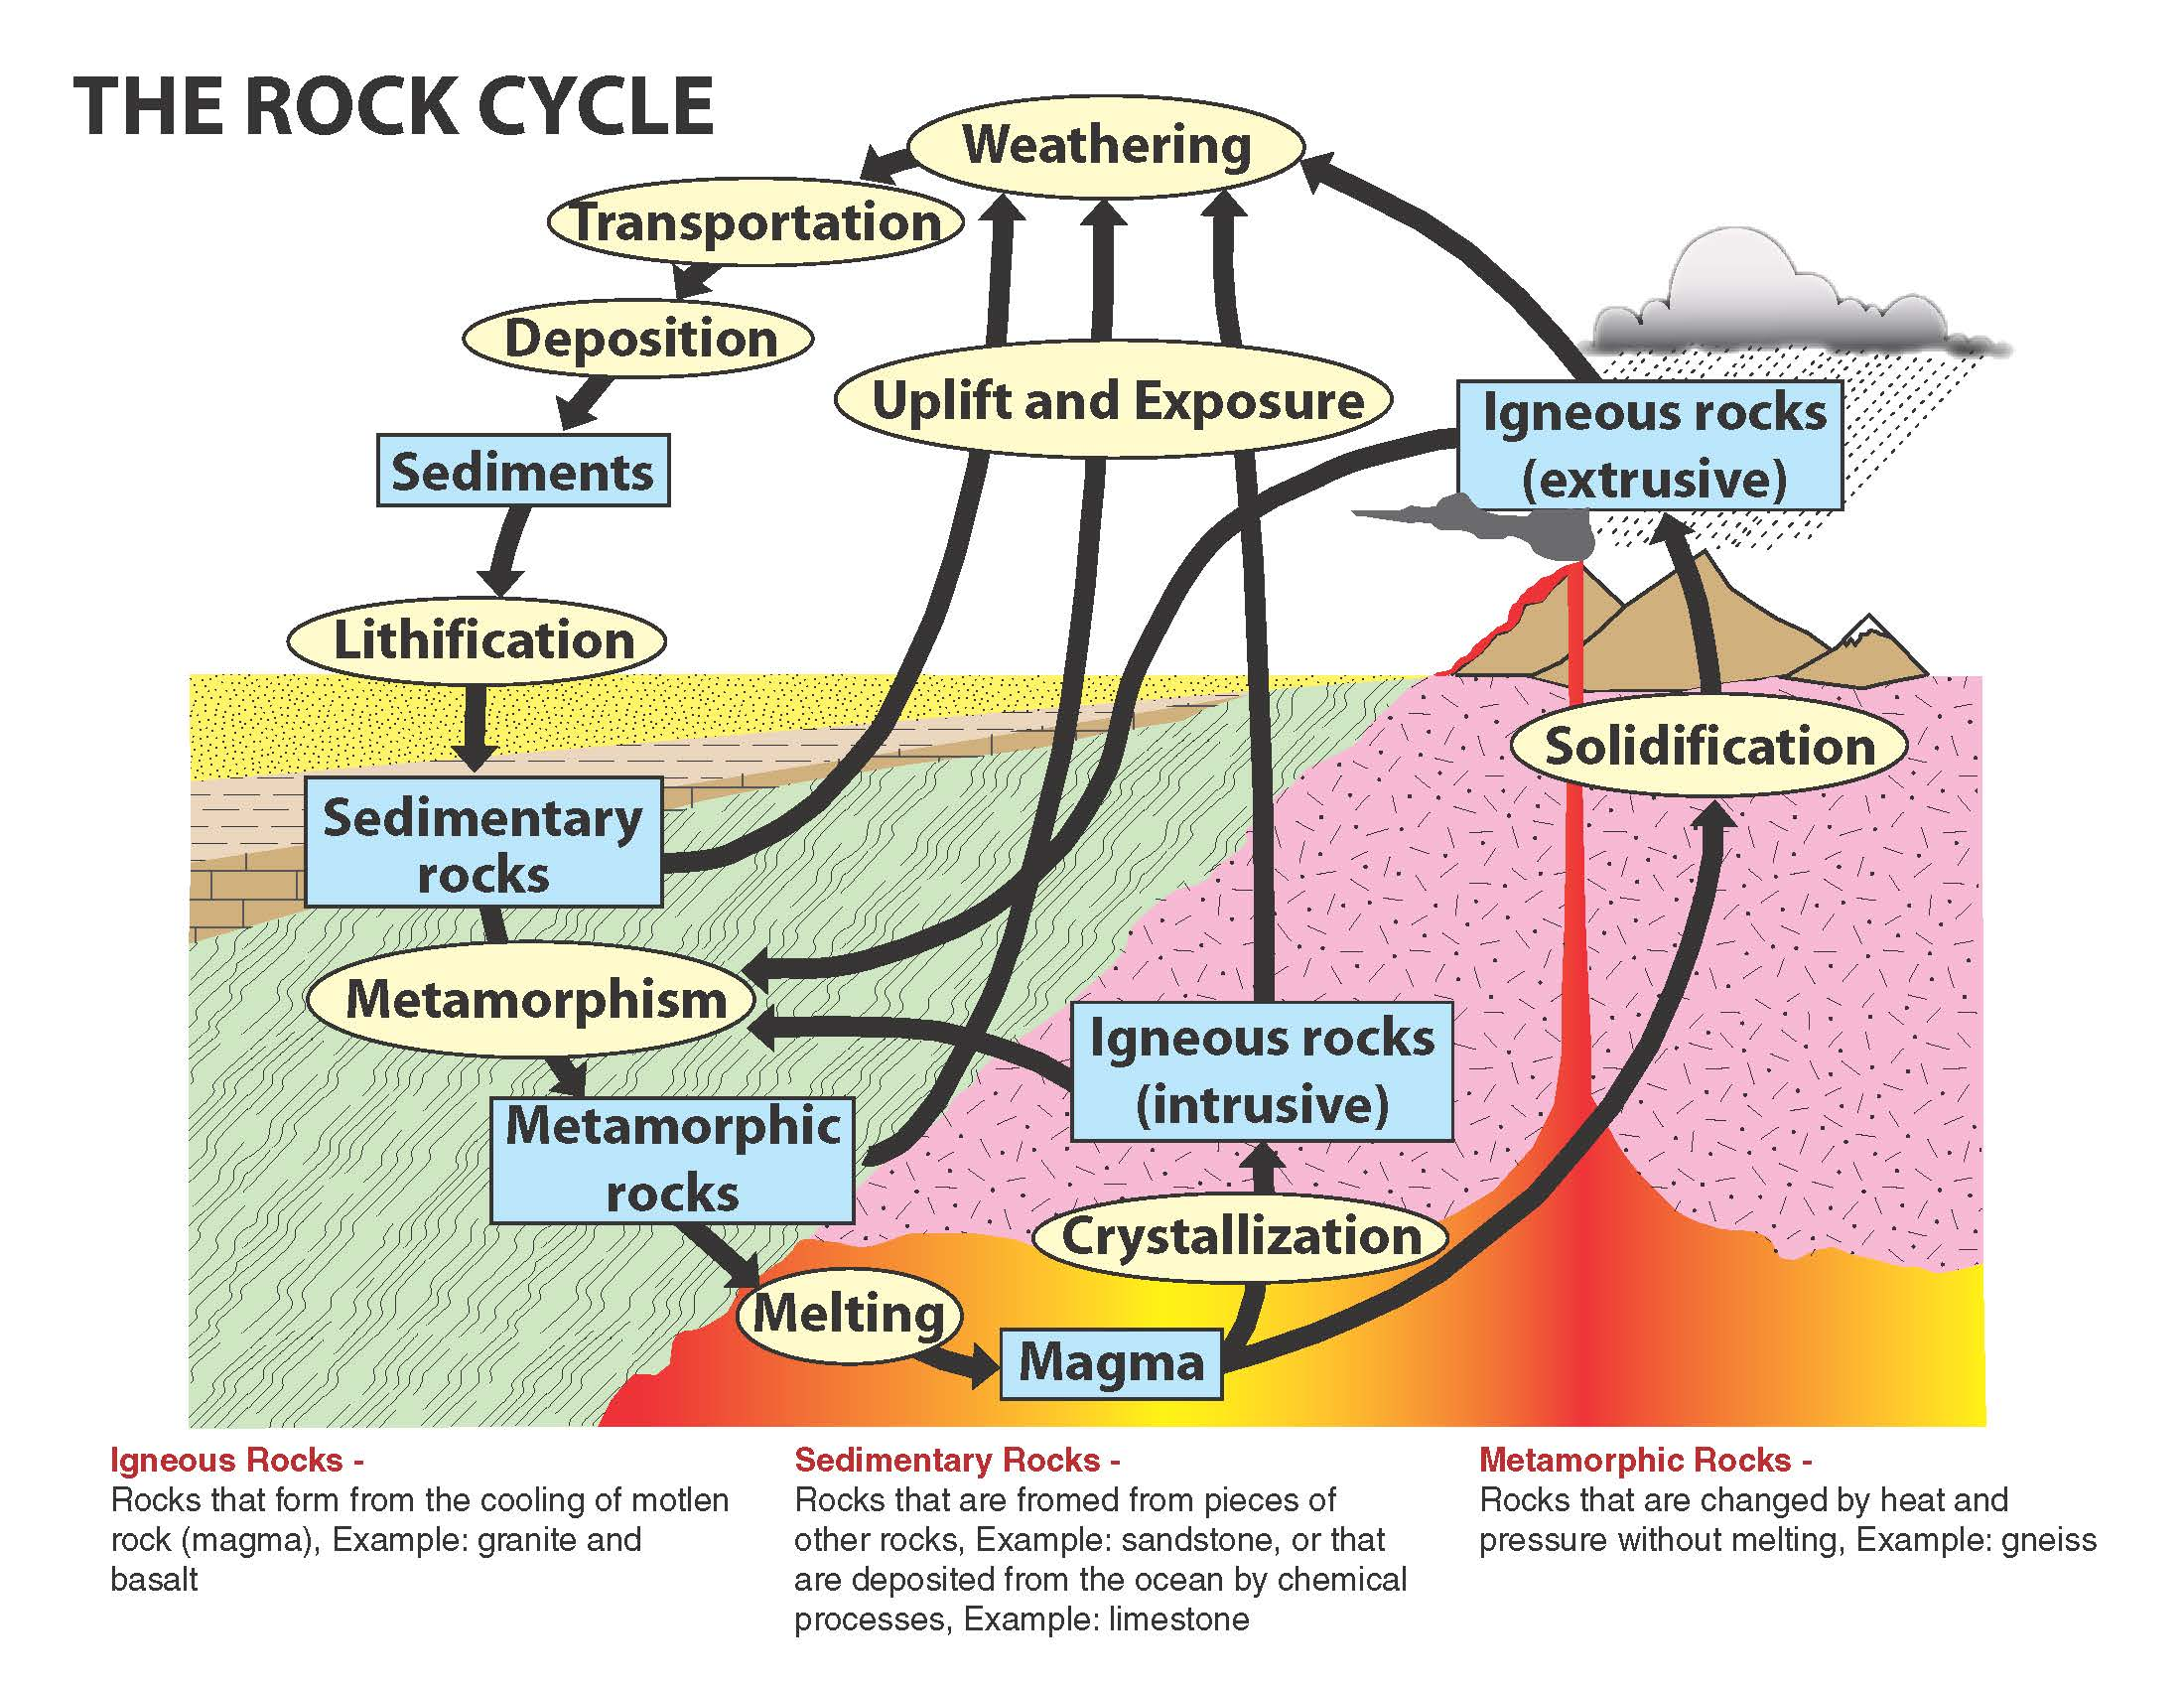 Crazy rock cycle diagram electrical work wiring diagram a wild ride through the rock cycle use natural stone rh usenaturalstone org cartoon rock cycle diagram cartoon rock cycle diagram ccuart Images